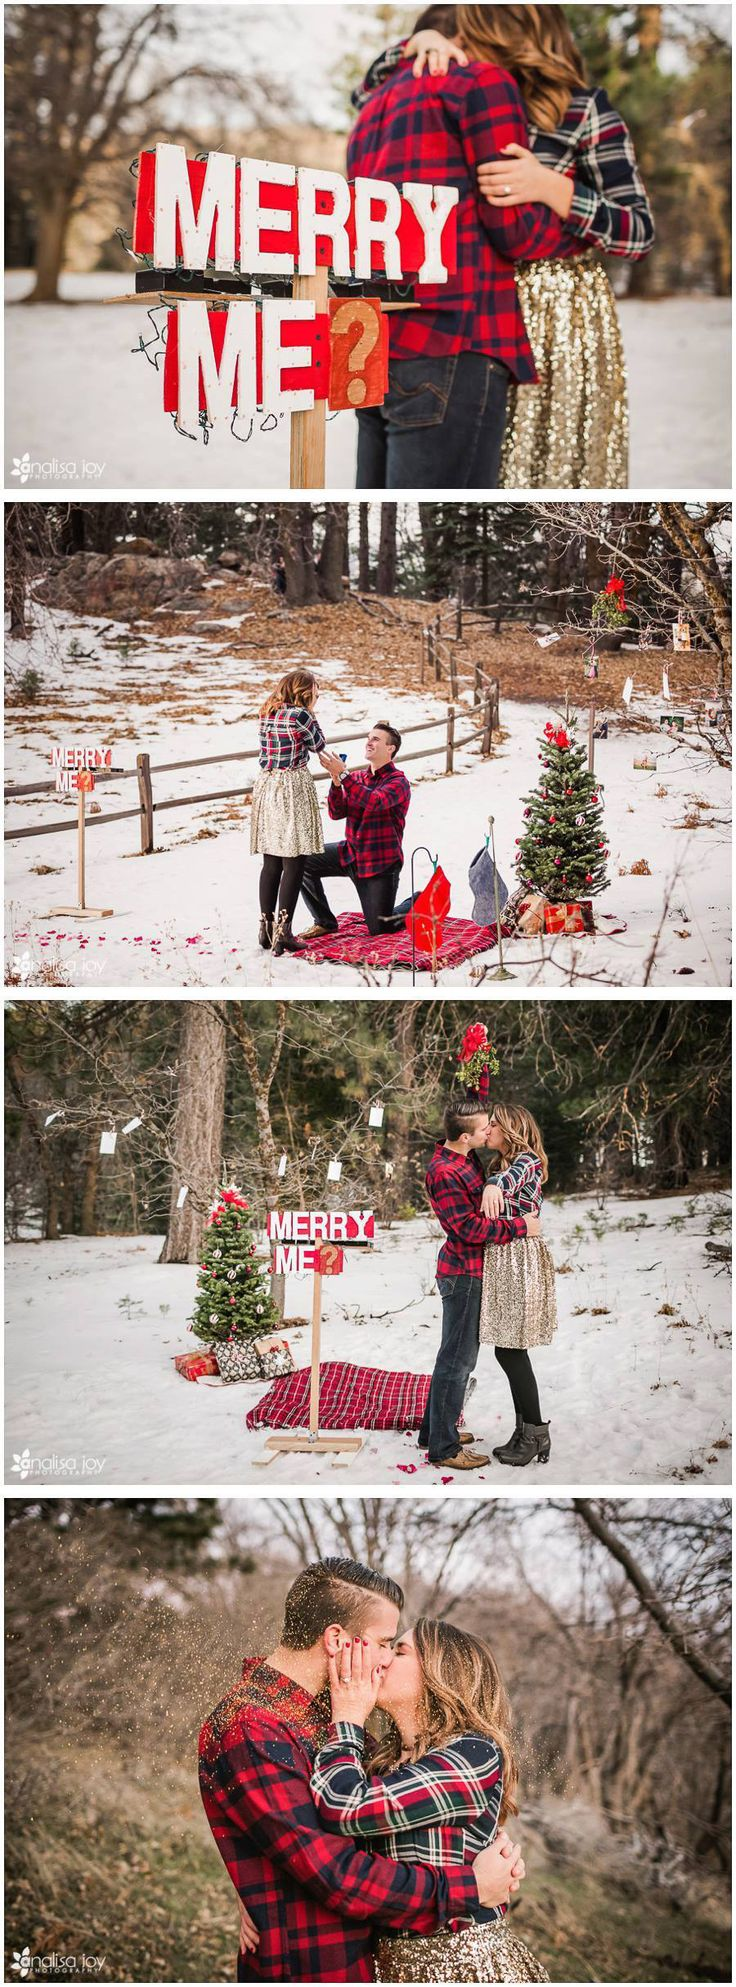 Surprise proposal full of snowy Christmas cheer, perfectly planned and captured by wedding photographer Analisa Joy Photography {Facebook: The Wedding Scoop}